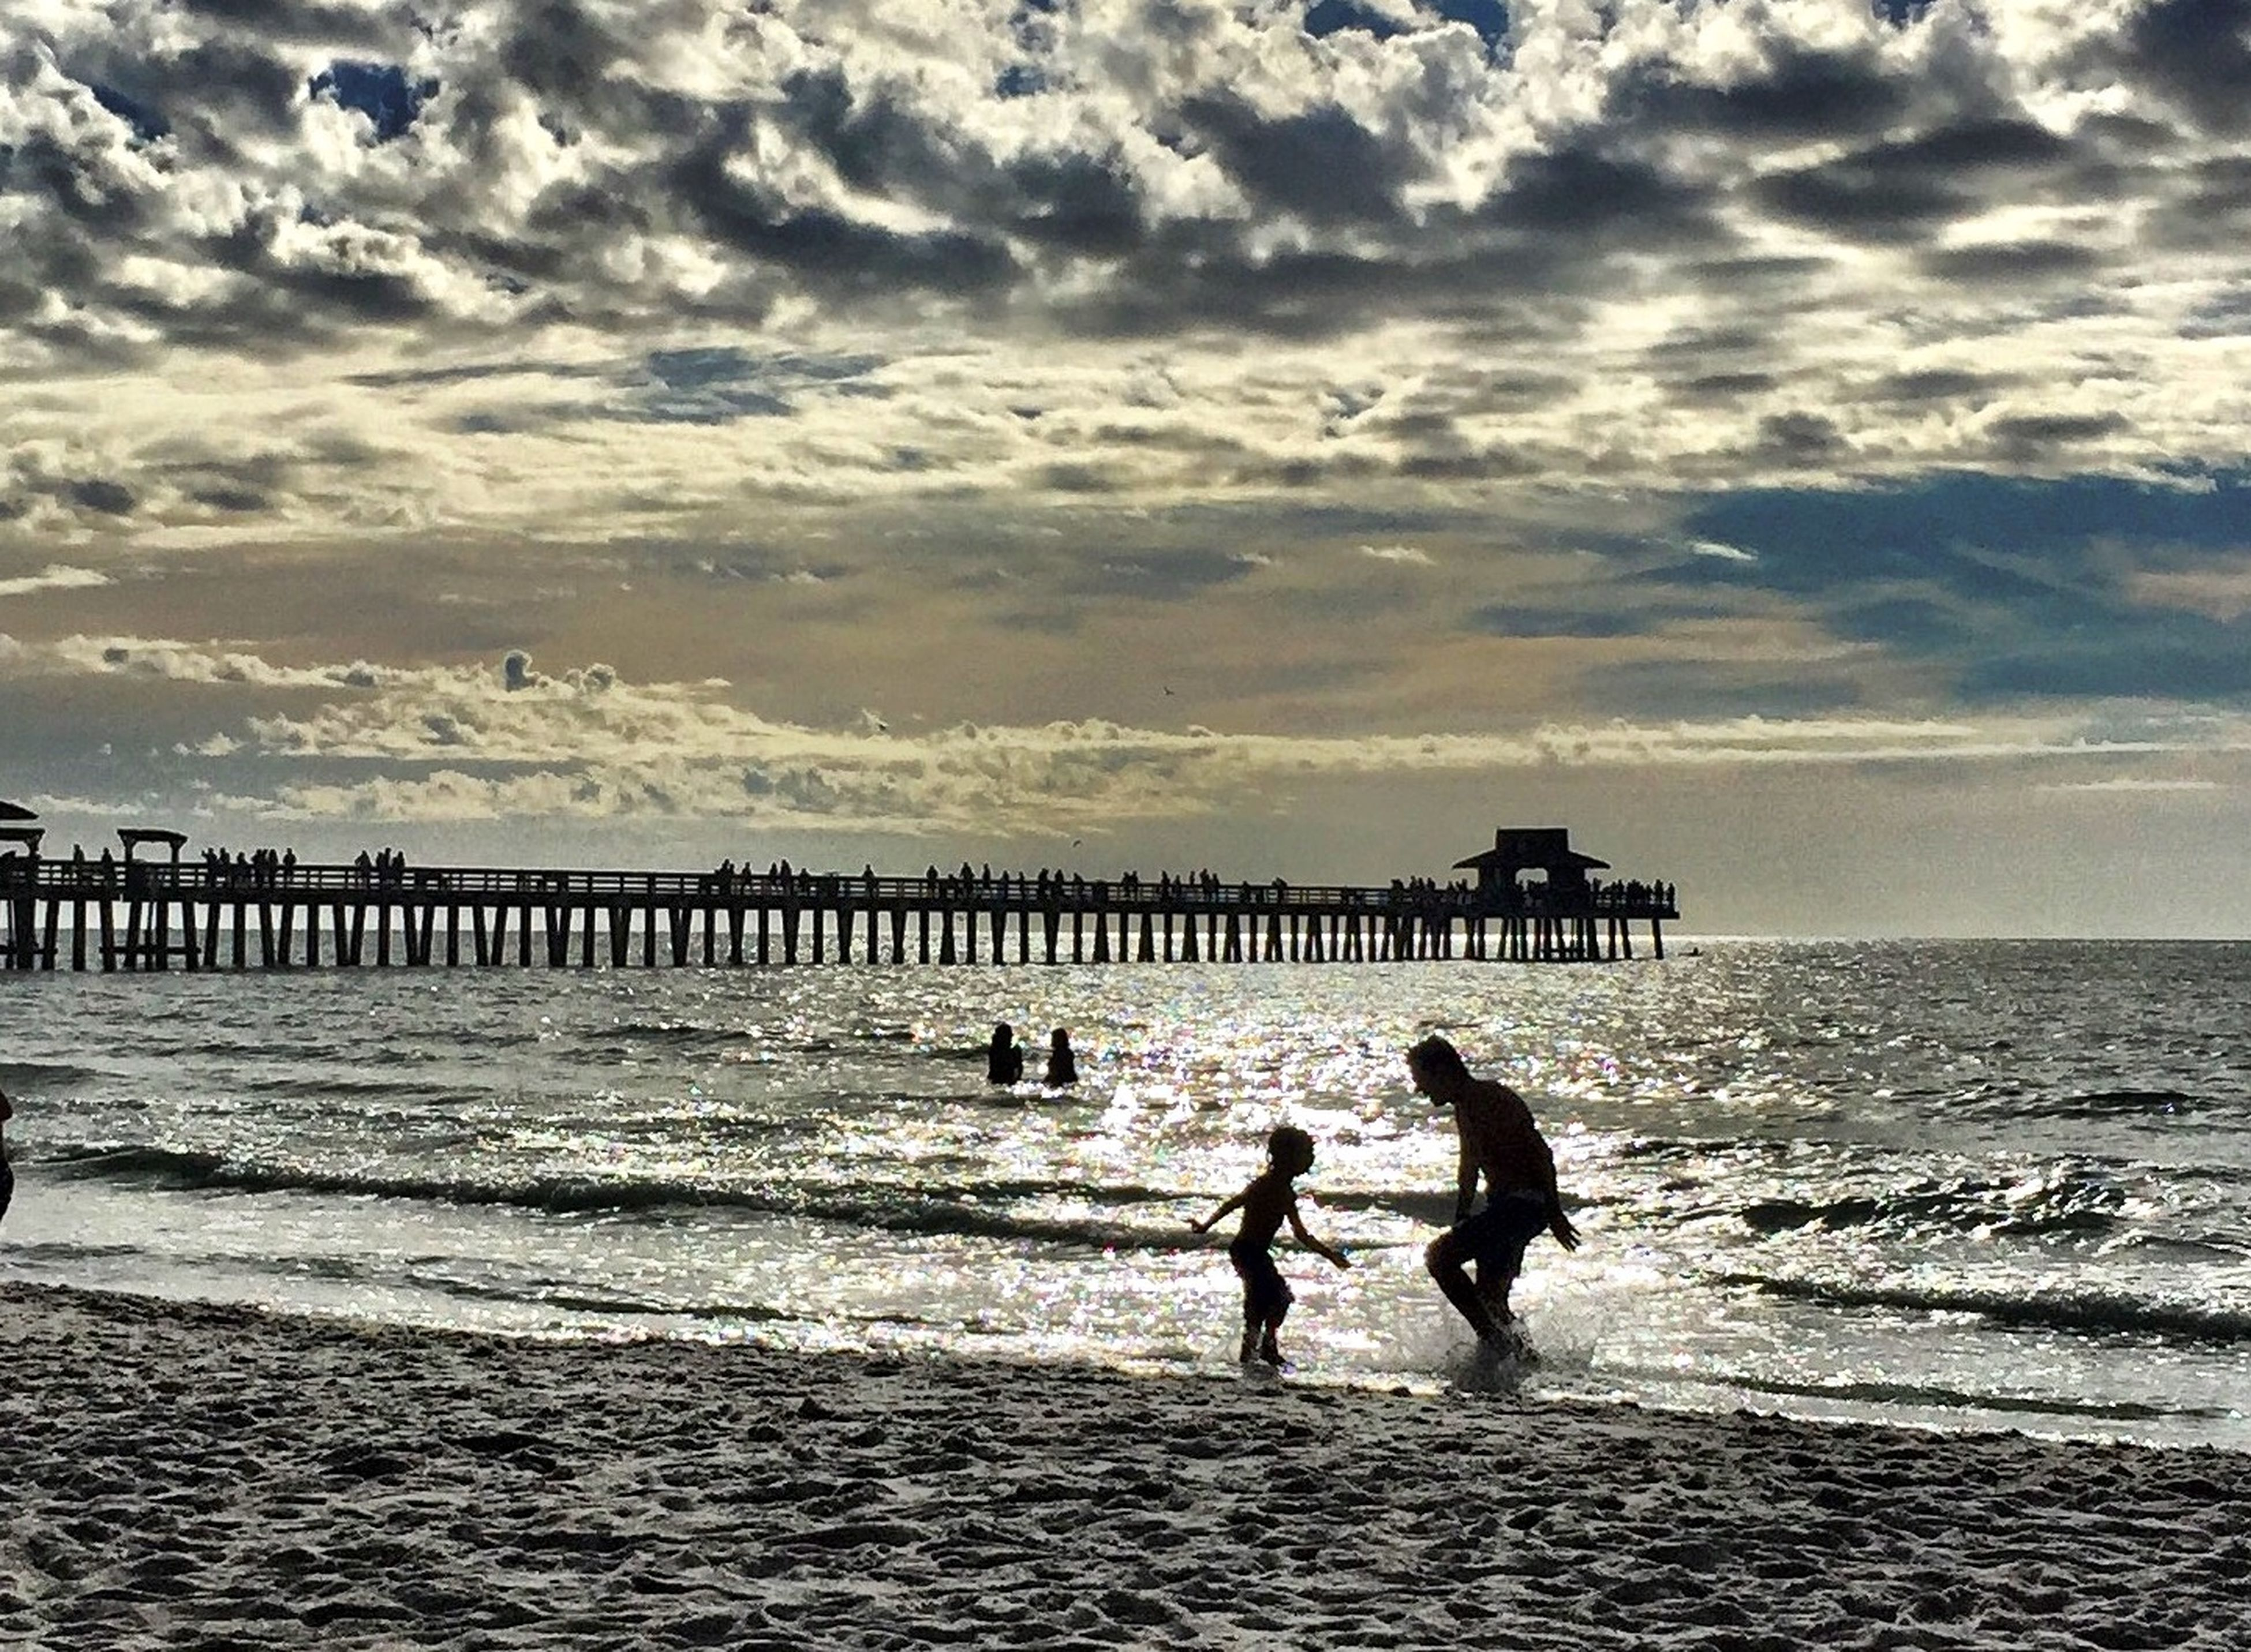 sea, water, beach, horizon over water, sky, lifestyles, leisure activity, men, shore, cloud - sky, sand, full length, silhouette, pier, person, scenics, vacations, tranquil scene